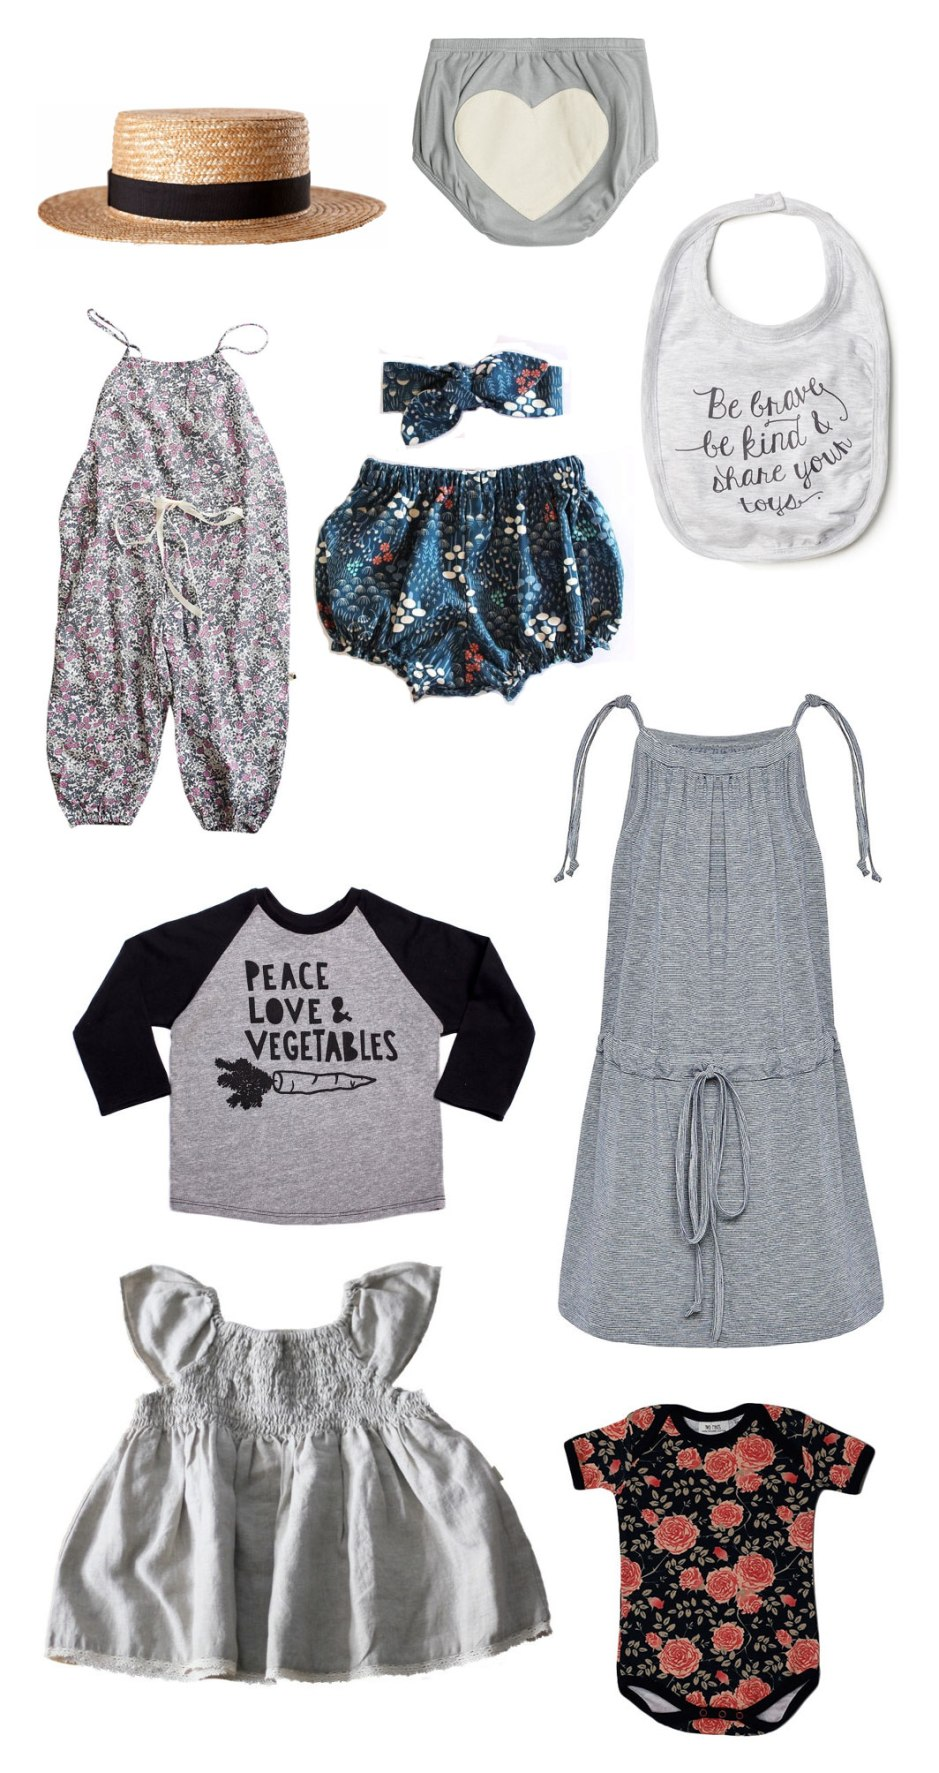 9 Australian ethical fashion brands for kids 9 Australian ethical fashion brands for kids